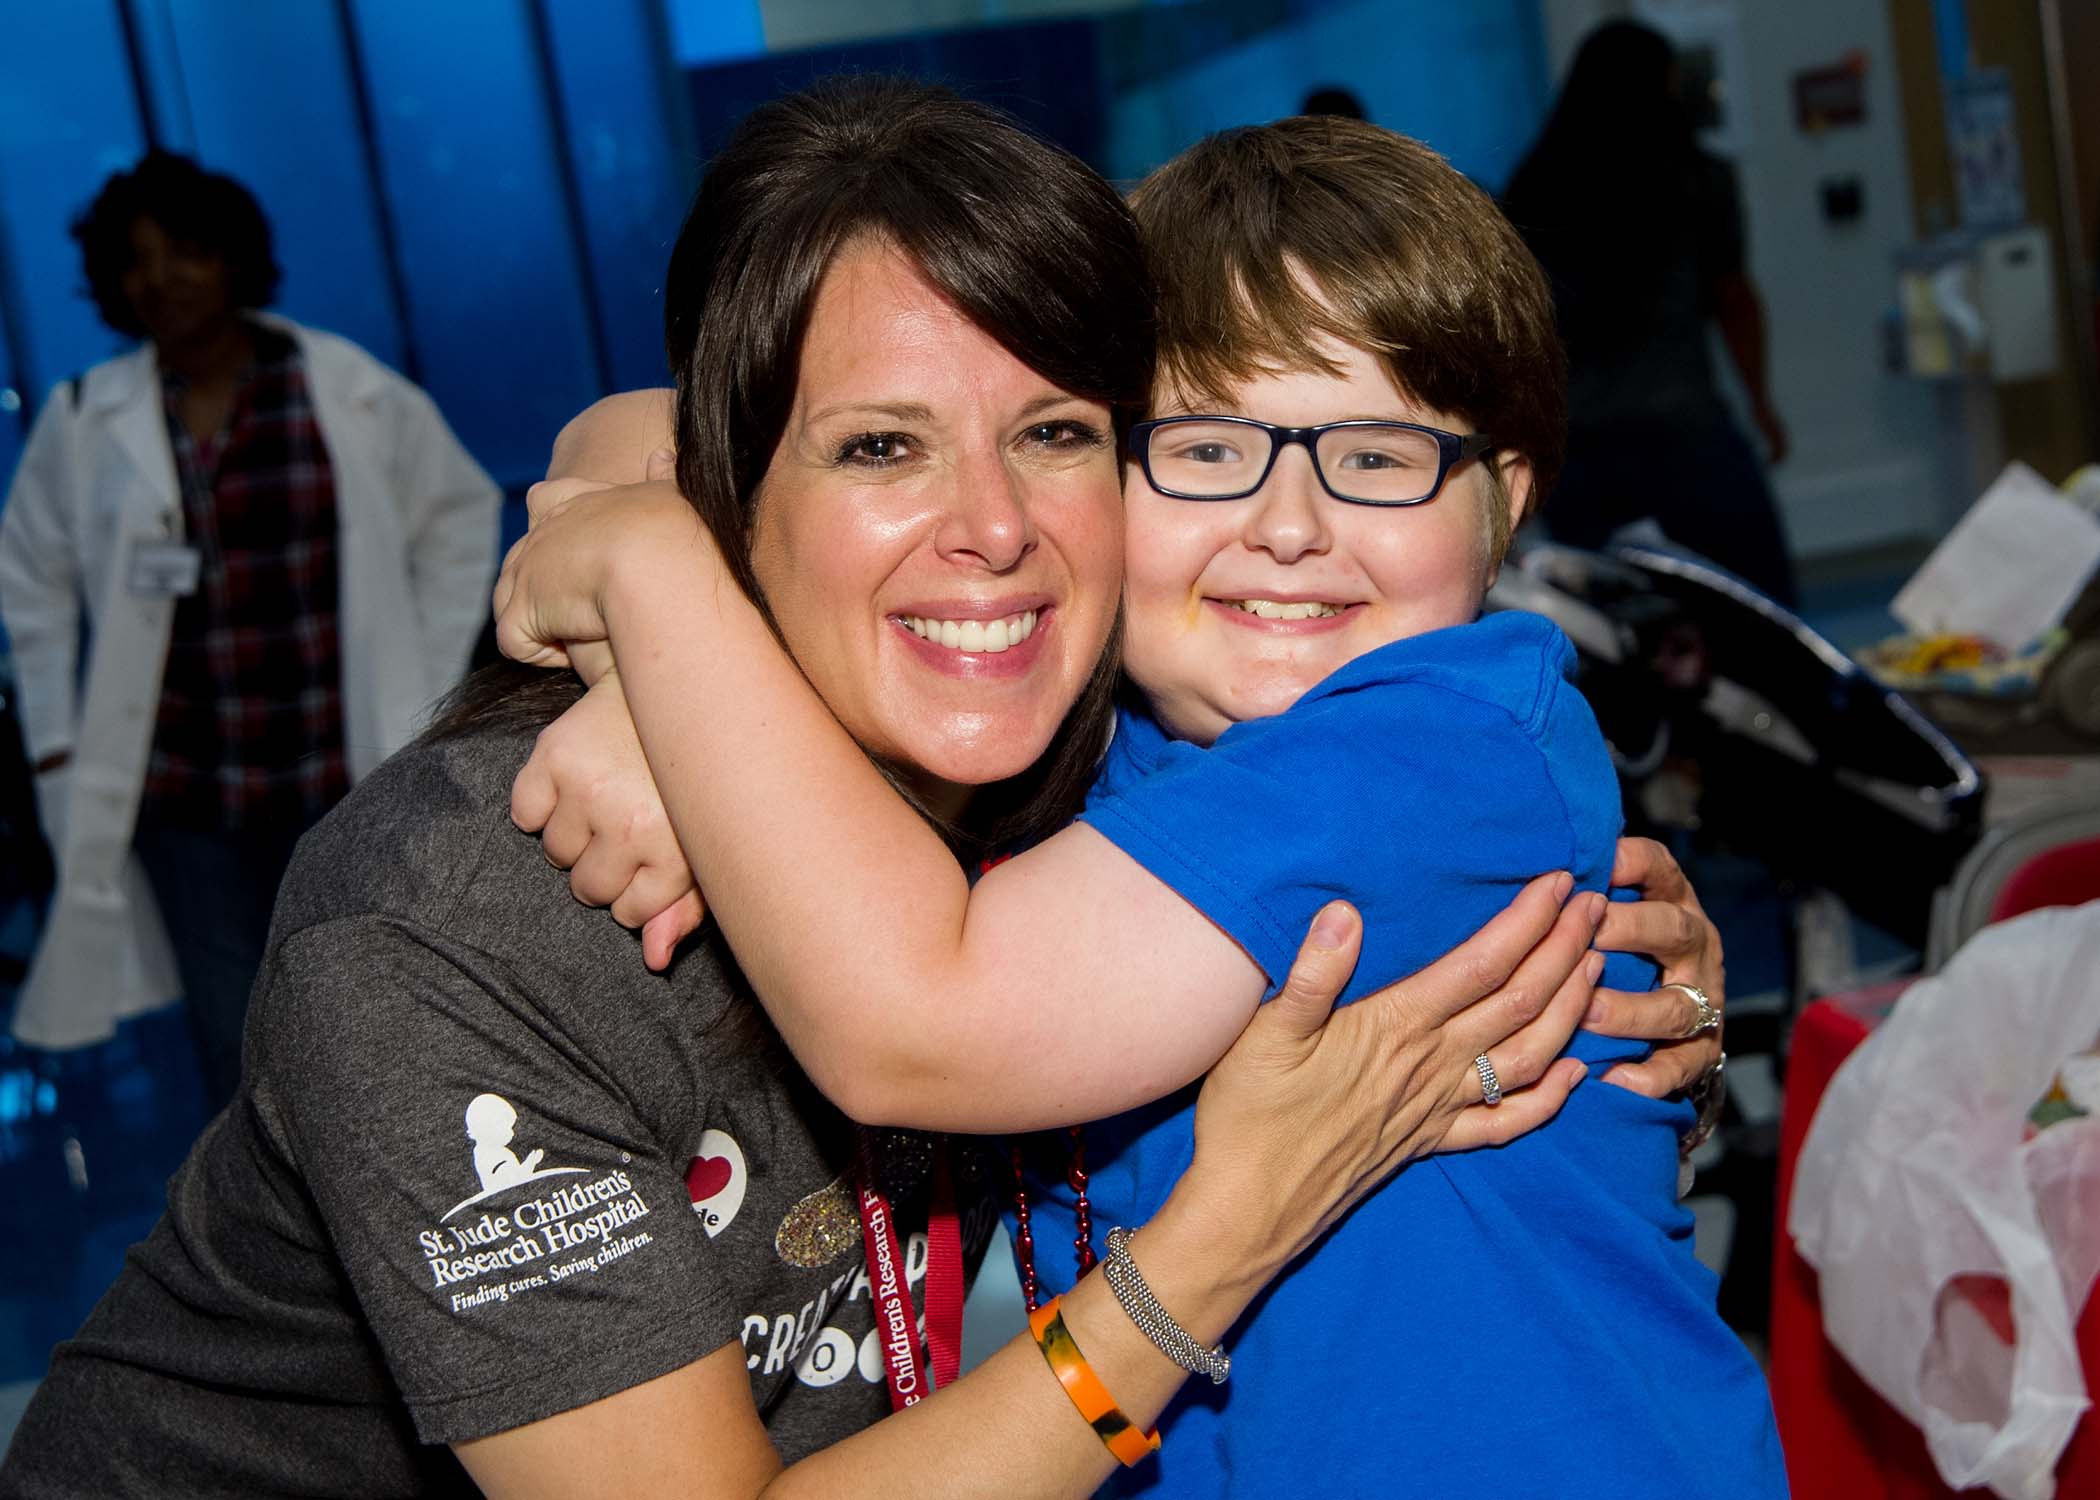 Chili's President, Kelli Valade, with St. Jude kid